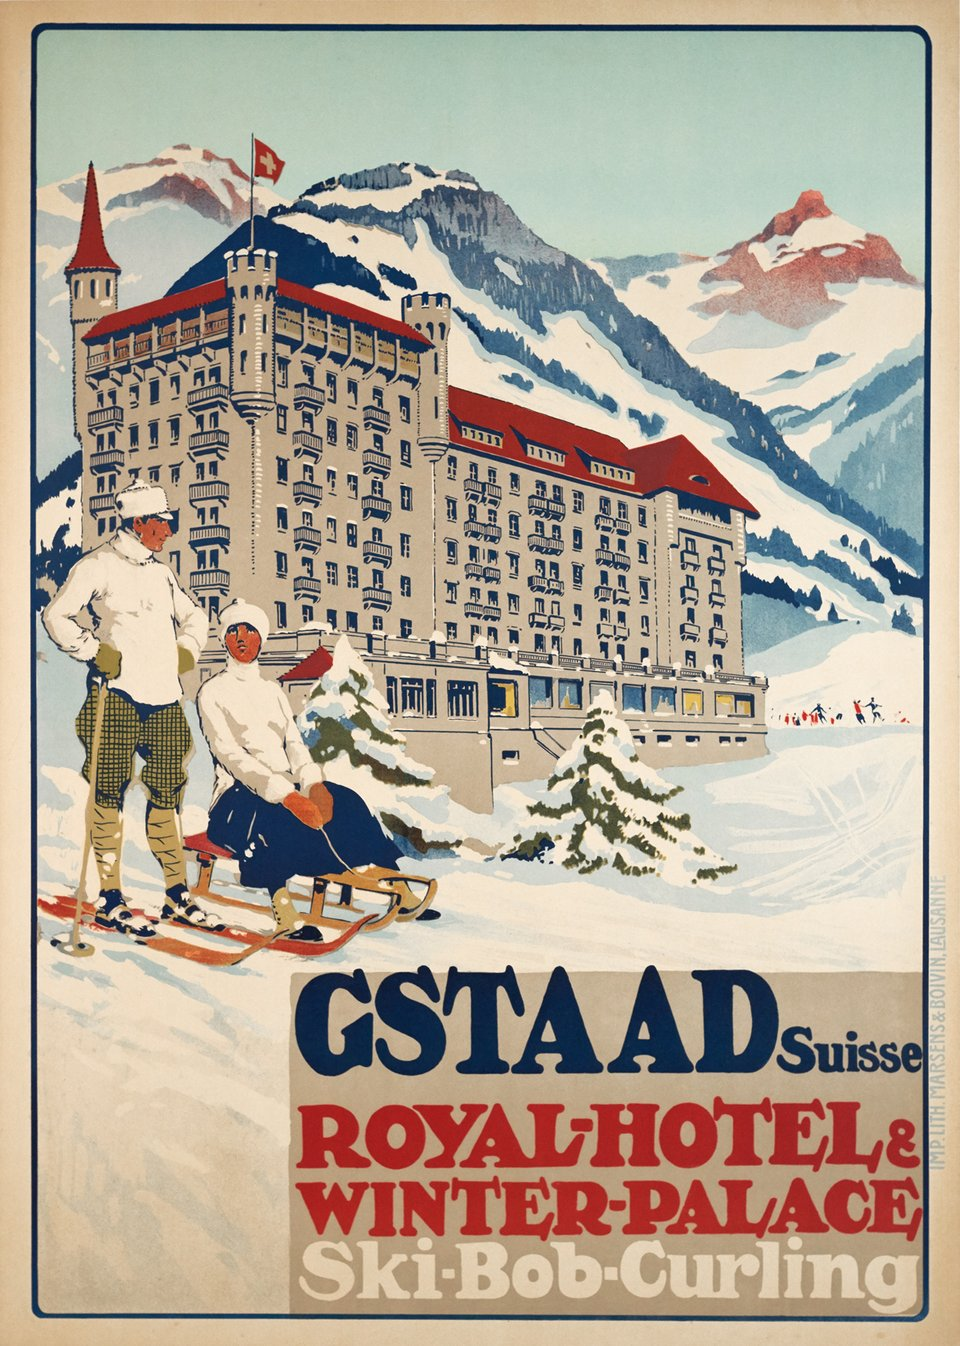 Gstaad Suisse - Royal Hôtel & Winter Palace - Ski-Bob-Curling – Affiche ancienne – Carlo PELLEGRINI – 1913